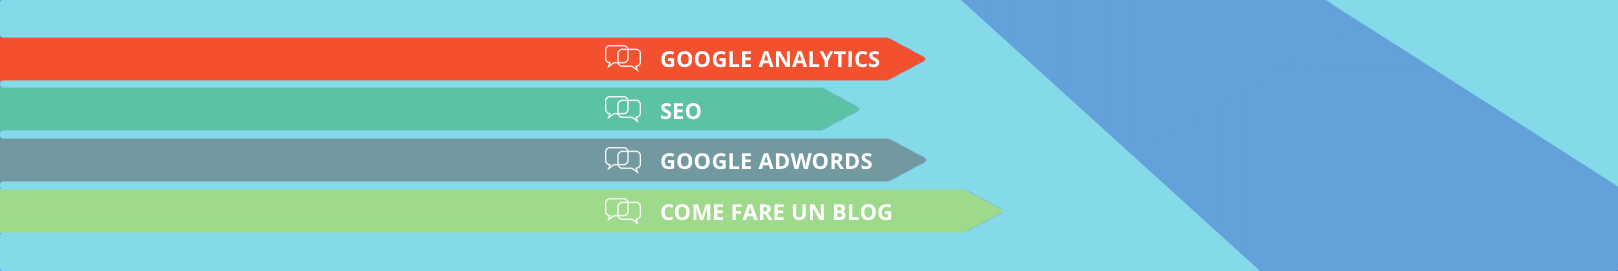 Corsi web marketing per le aziende